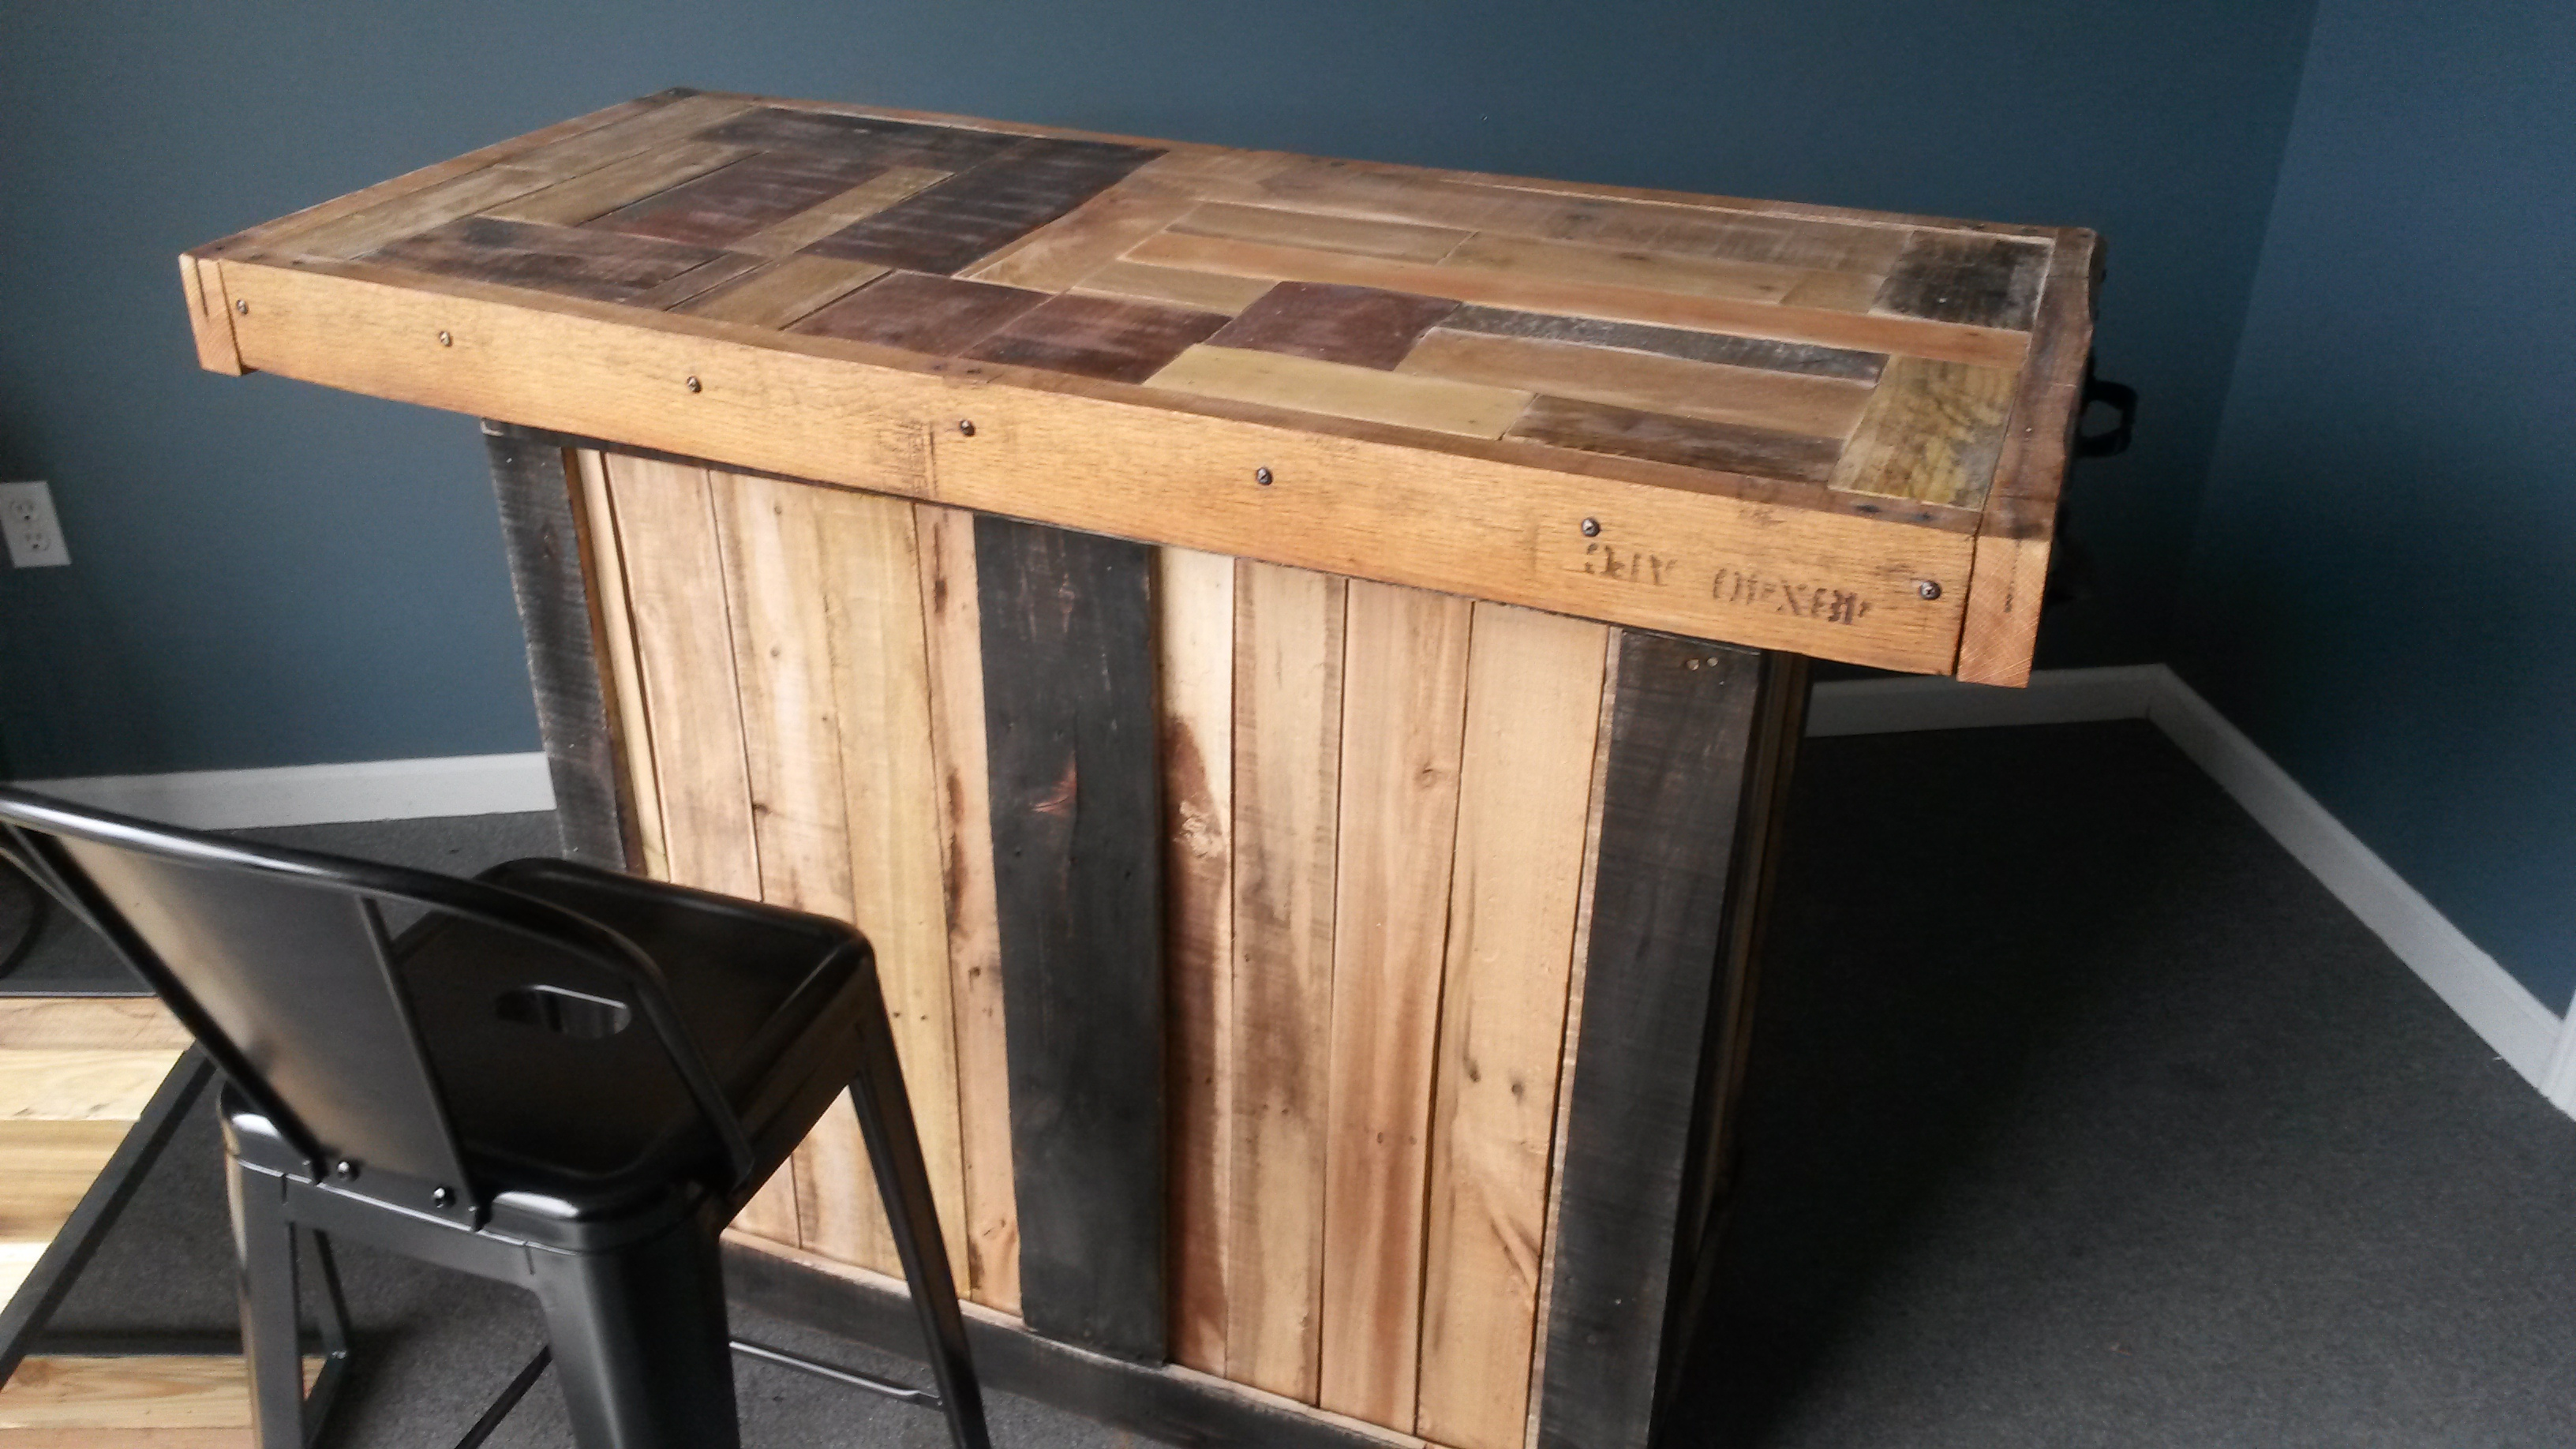 Pallet Bar 225 With Metal Stools 345 I Love Recycled Pallets They Come In All Shapes Sizes And Wood Colors Made A Mosaic Top